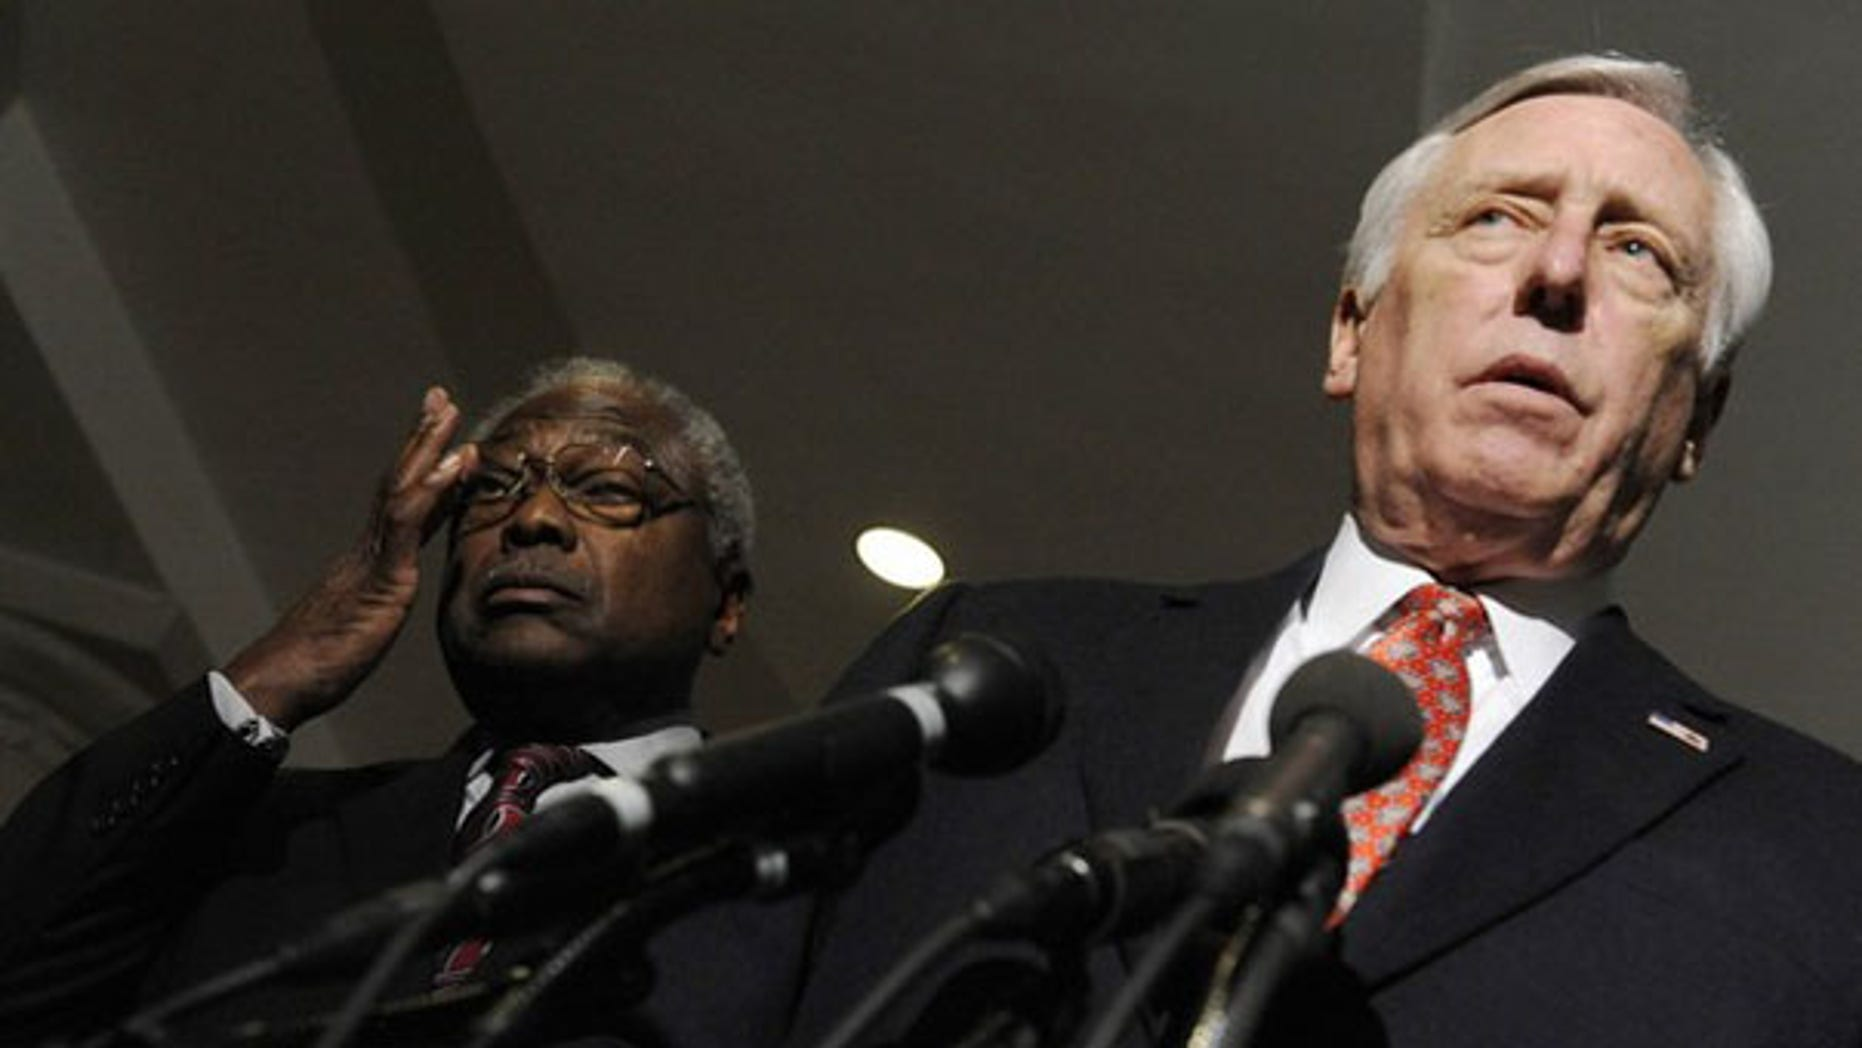 House Majority Leader Steny Hoyer, right, and Majority Whip James Clyburn speak to reporters at the U.S. Capitol March 20. (Reuters Photo)